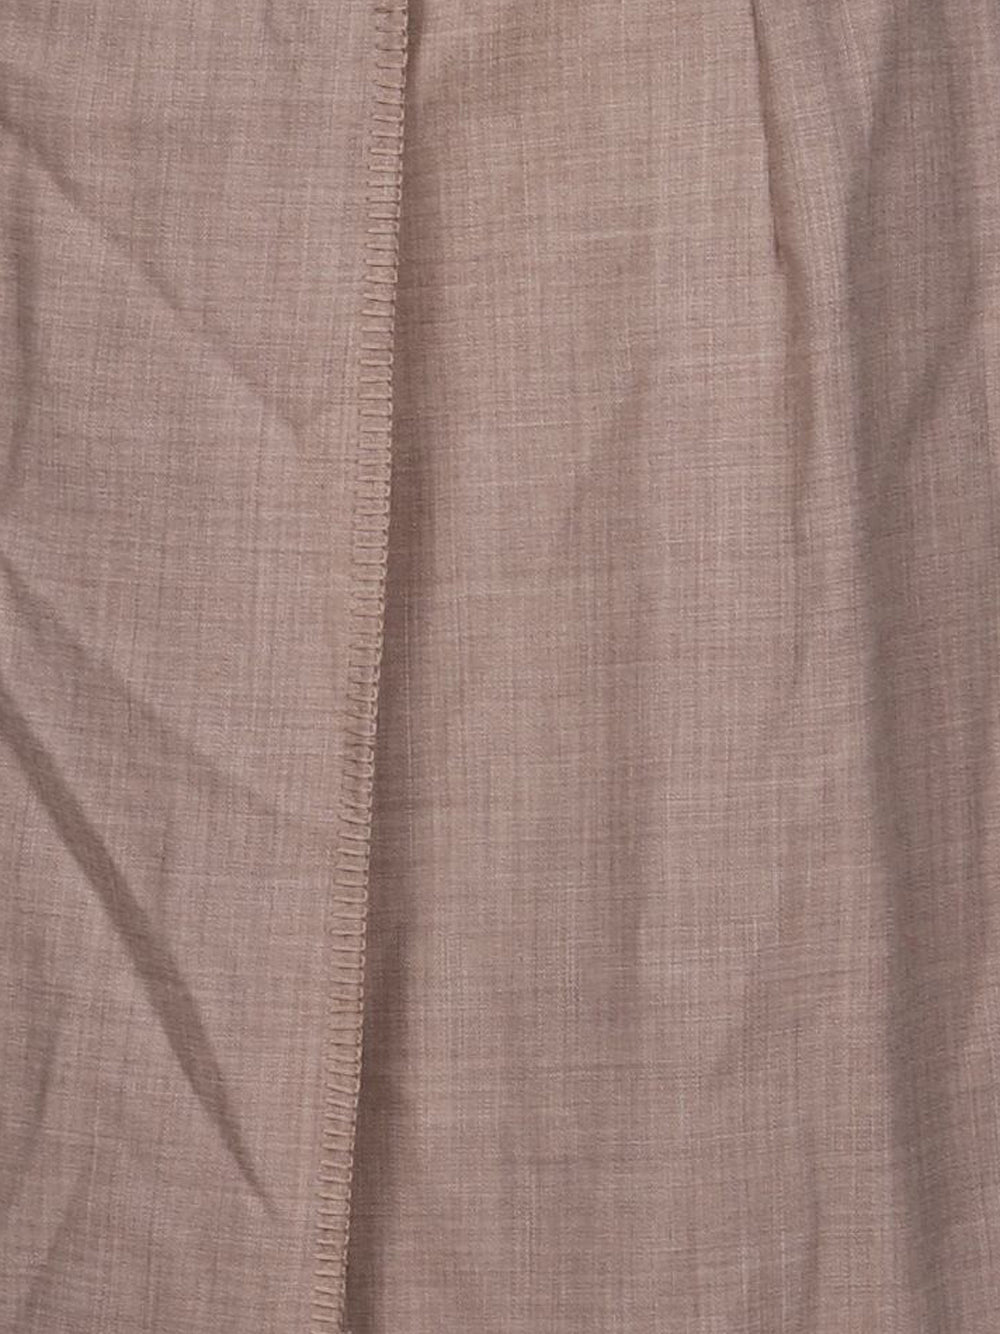 Detail photo of Preloved scapa of scotland Beige Woman's skirt - size 8/S